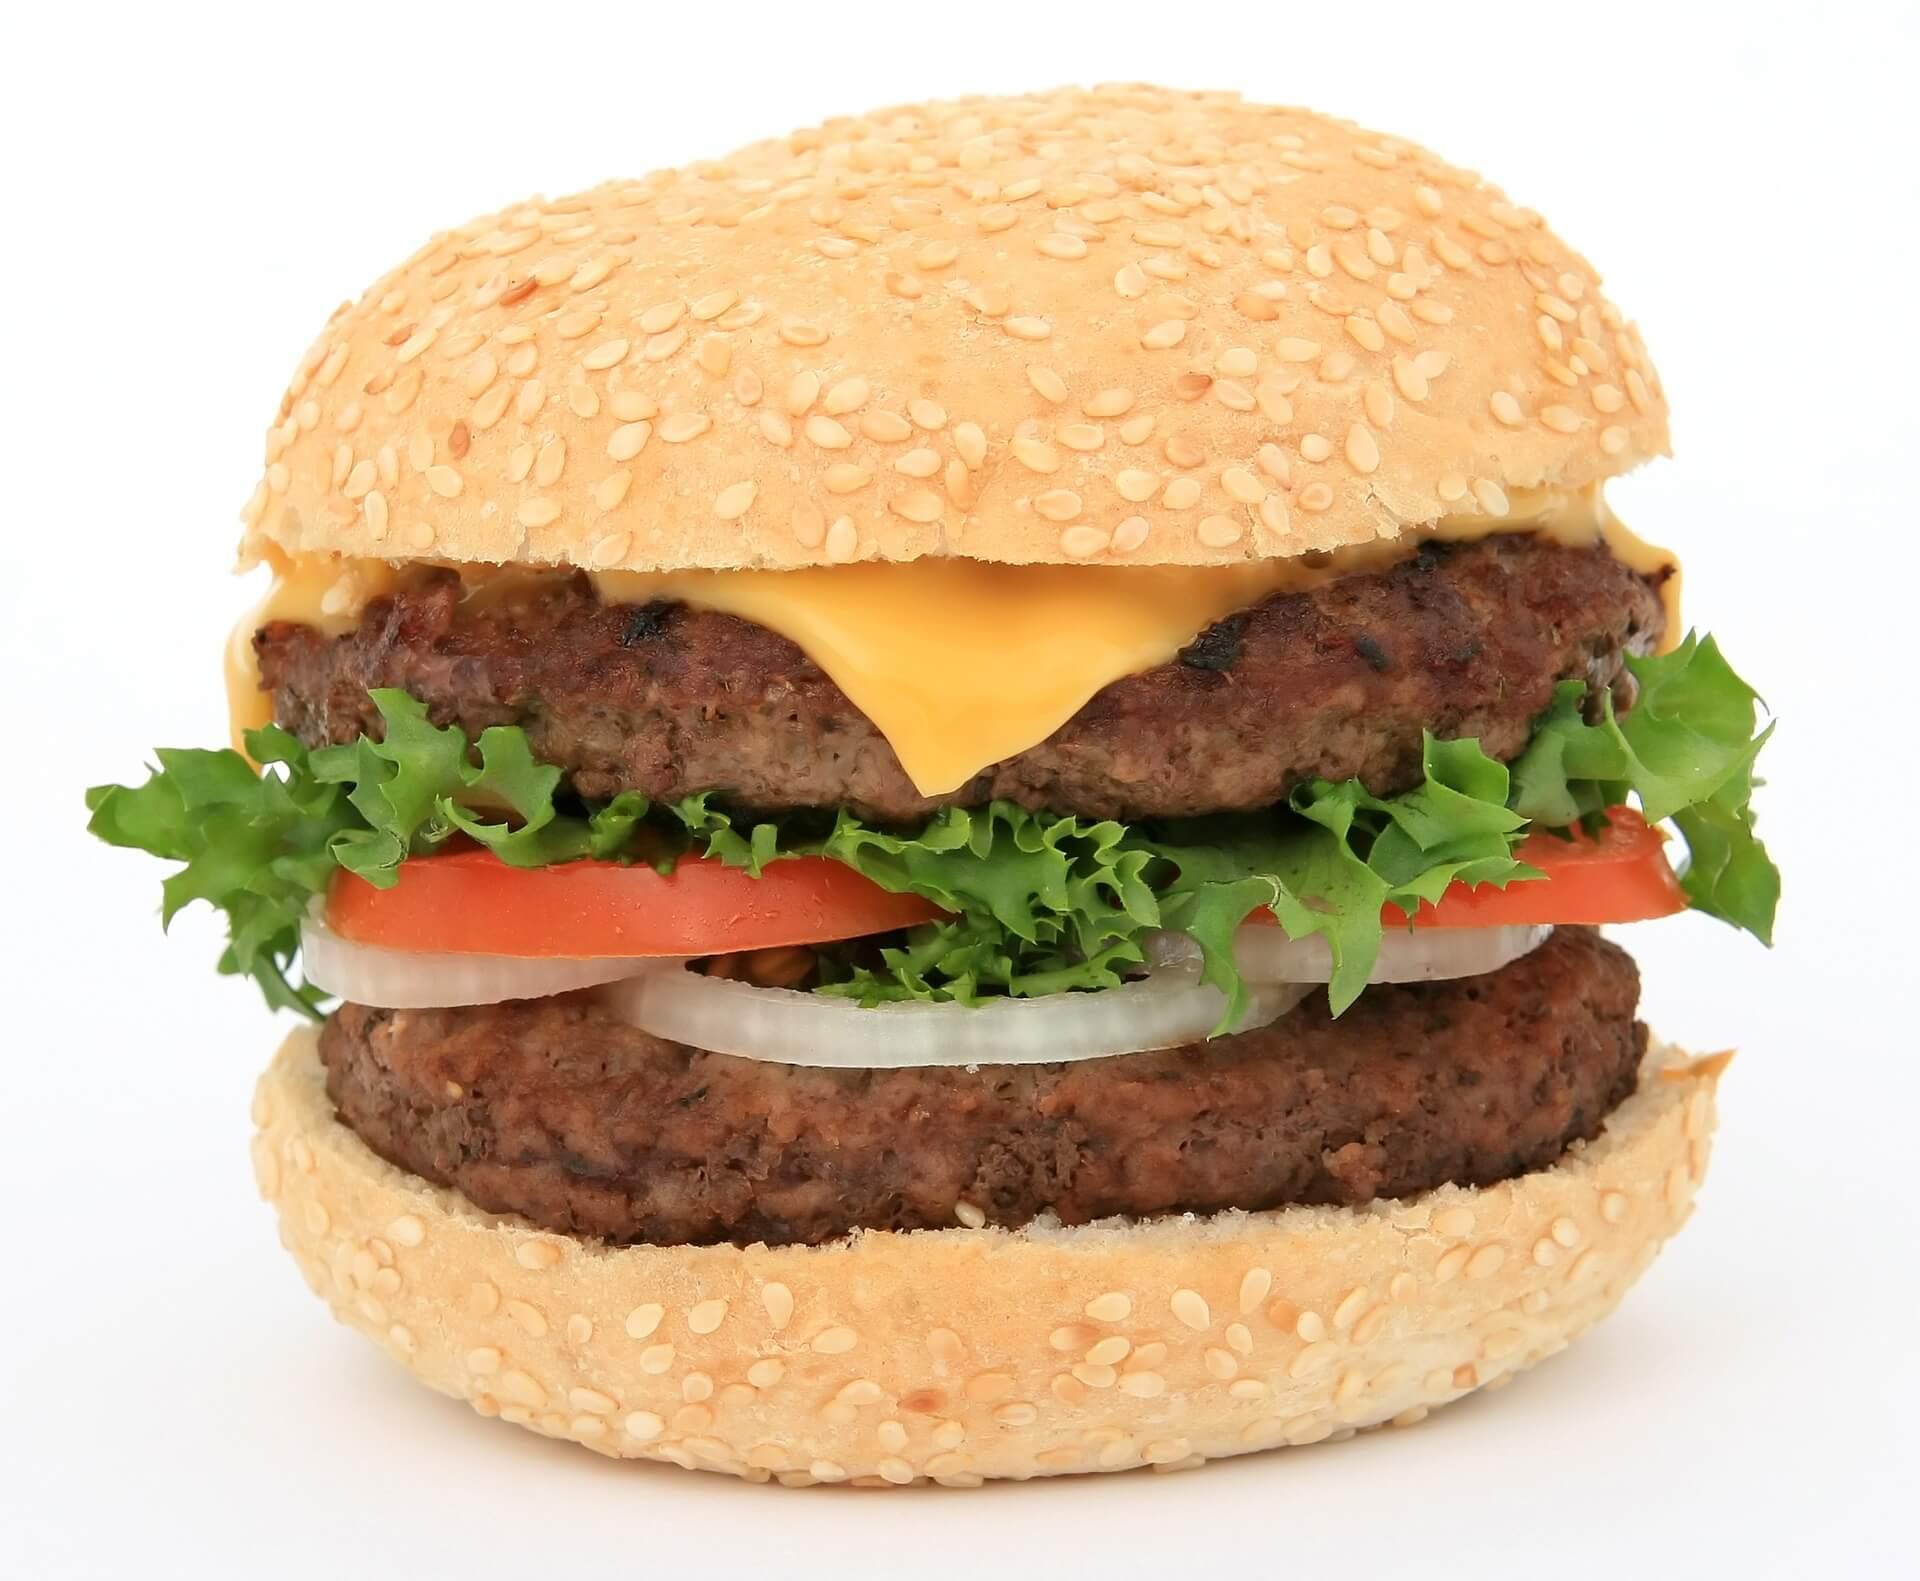 9 Meatless Burgers That Taste Just Like the Real Thing   A&W Beyond Burger   FastFoodMenuPrices.com